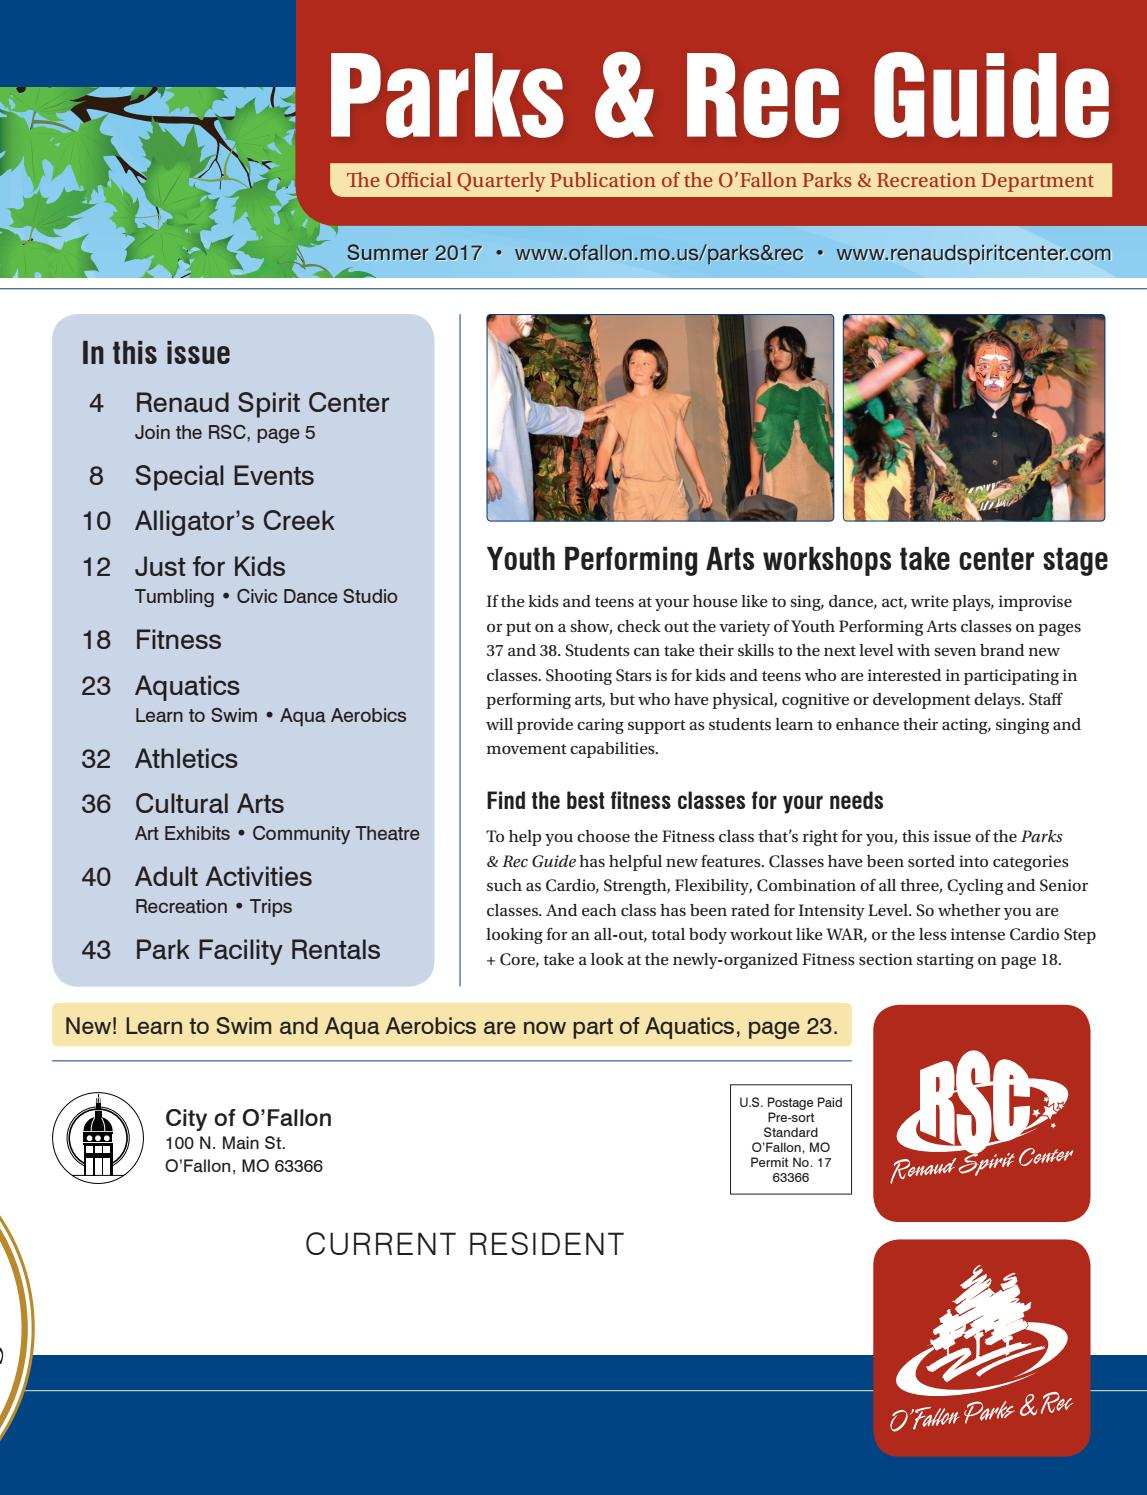 o'fallon parks and rec guide - summer 2017 by city of o'fallon - issuu